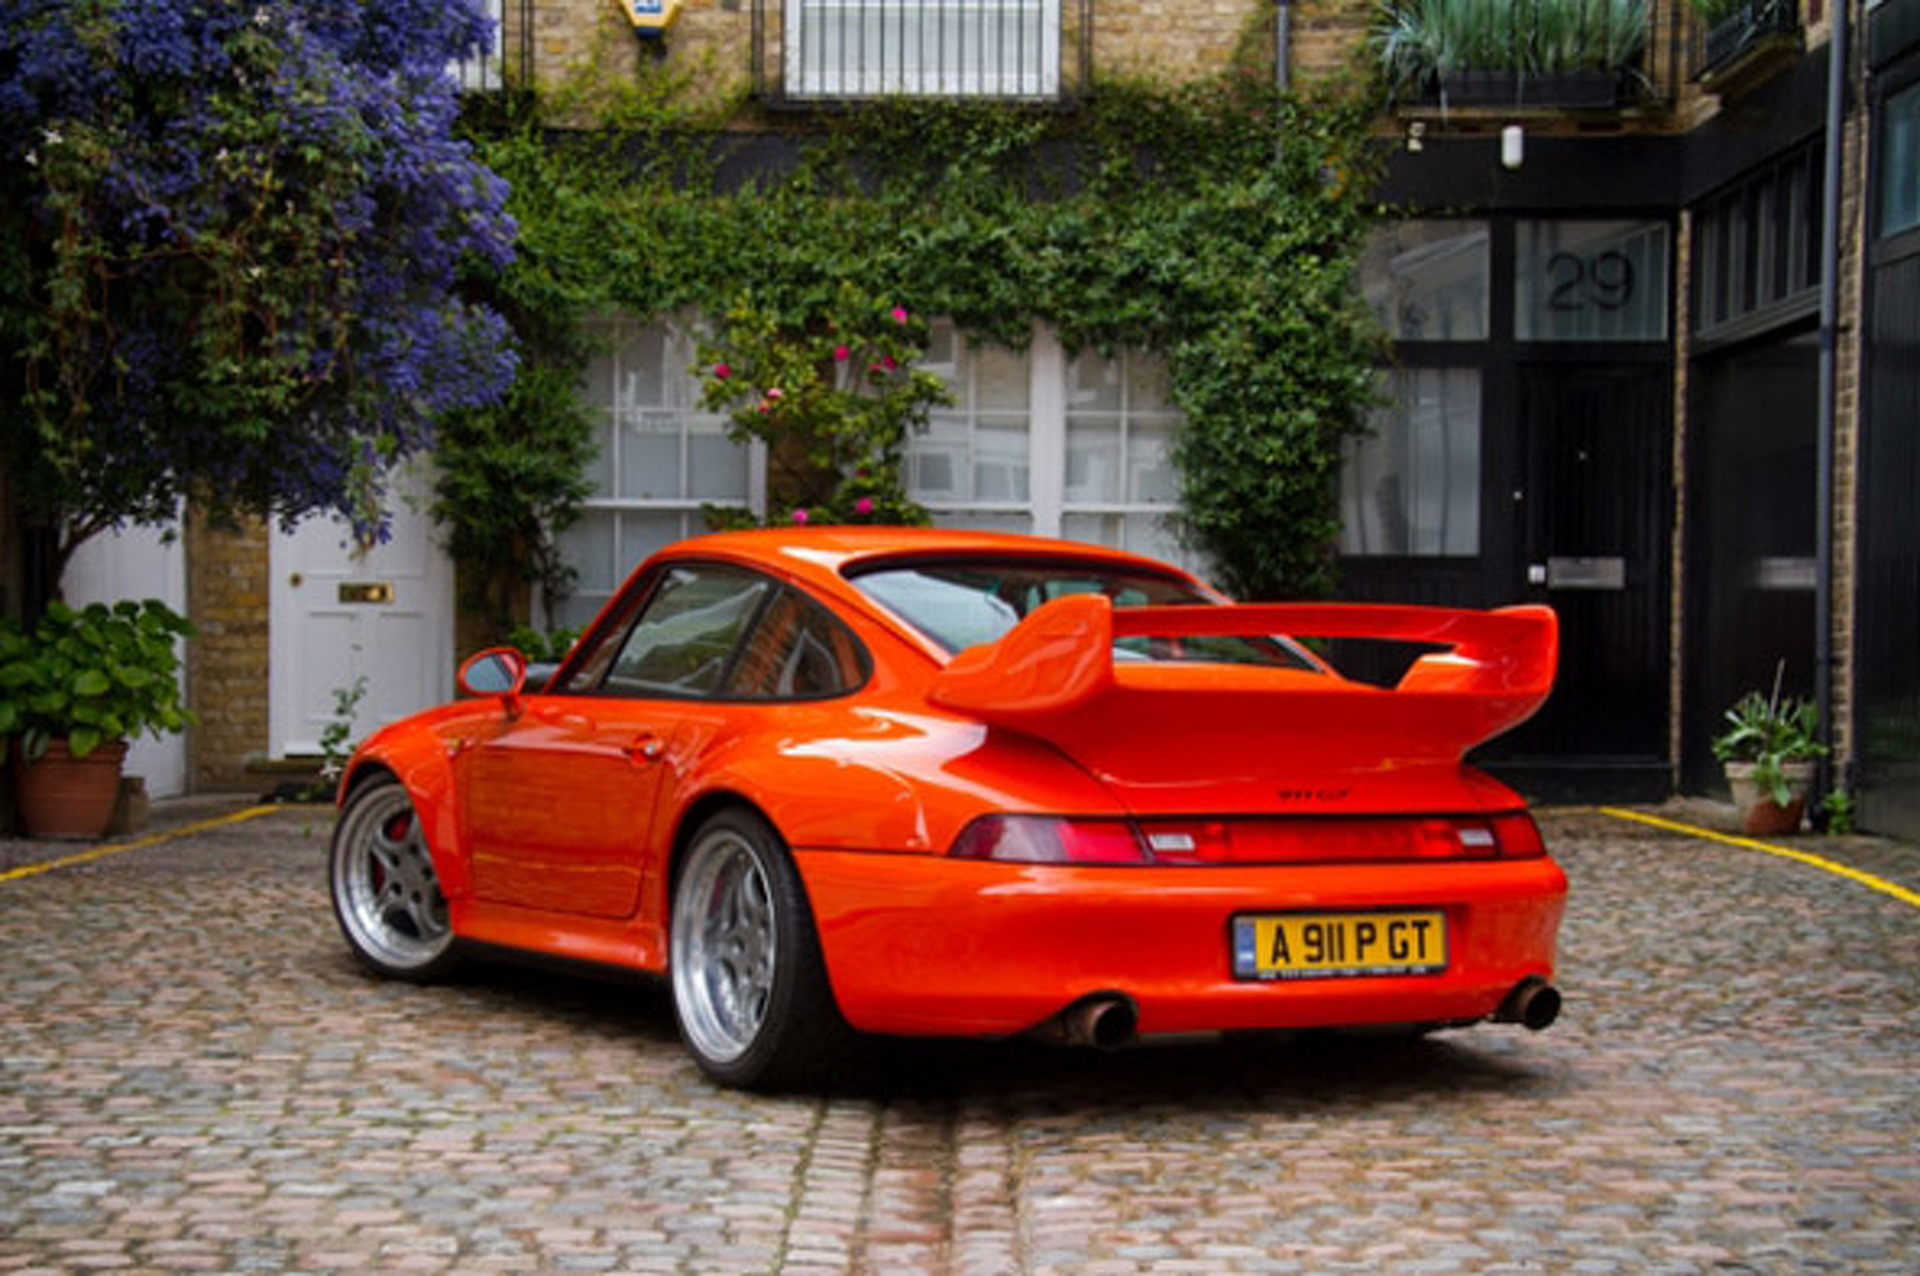 ultra-rare-porsche-911-gt2-clubsport-sold-in-the-uk Breathtaking How Many Porsche 911 Gt2 Were Made Cars Trend